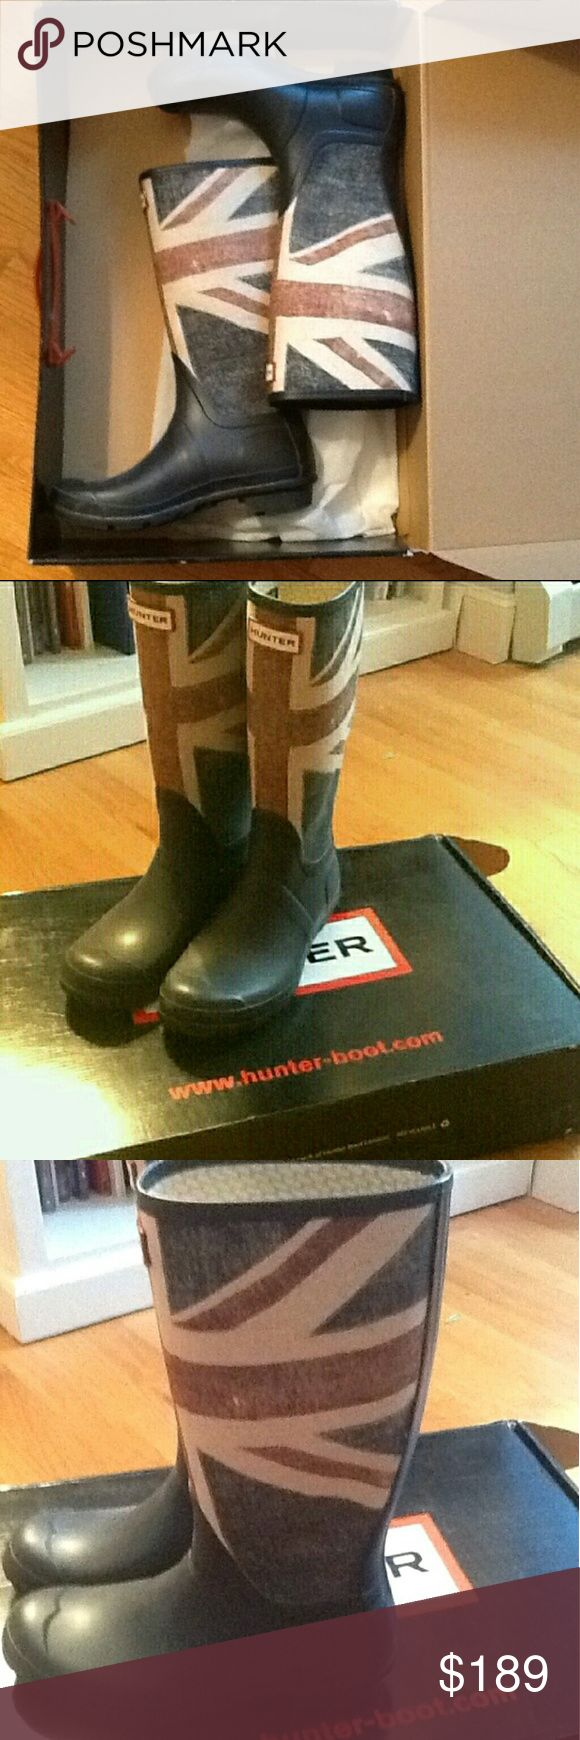 Hunter Boots RARE Worn once ON SALE Rare Hunter boots in like new condition, worn once size is 6 kids but equates to 7.5 women. Not many people have these at all. Worn once for 1 hour. RARE Flag Hunter Union Jack British style Hunter Boots  MAKE OFFERS Hunter Boots Shoes Winter & Rain Boots